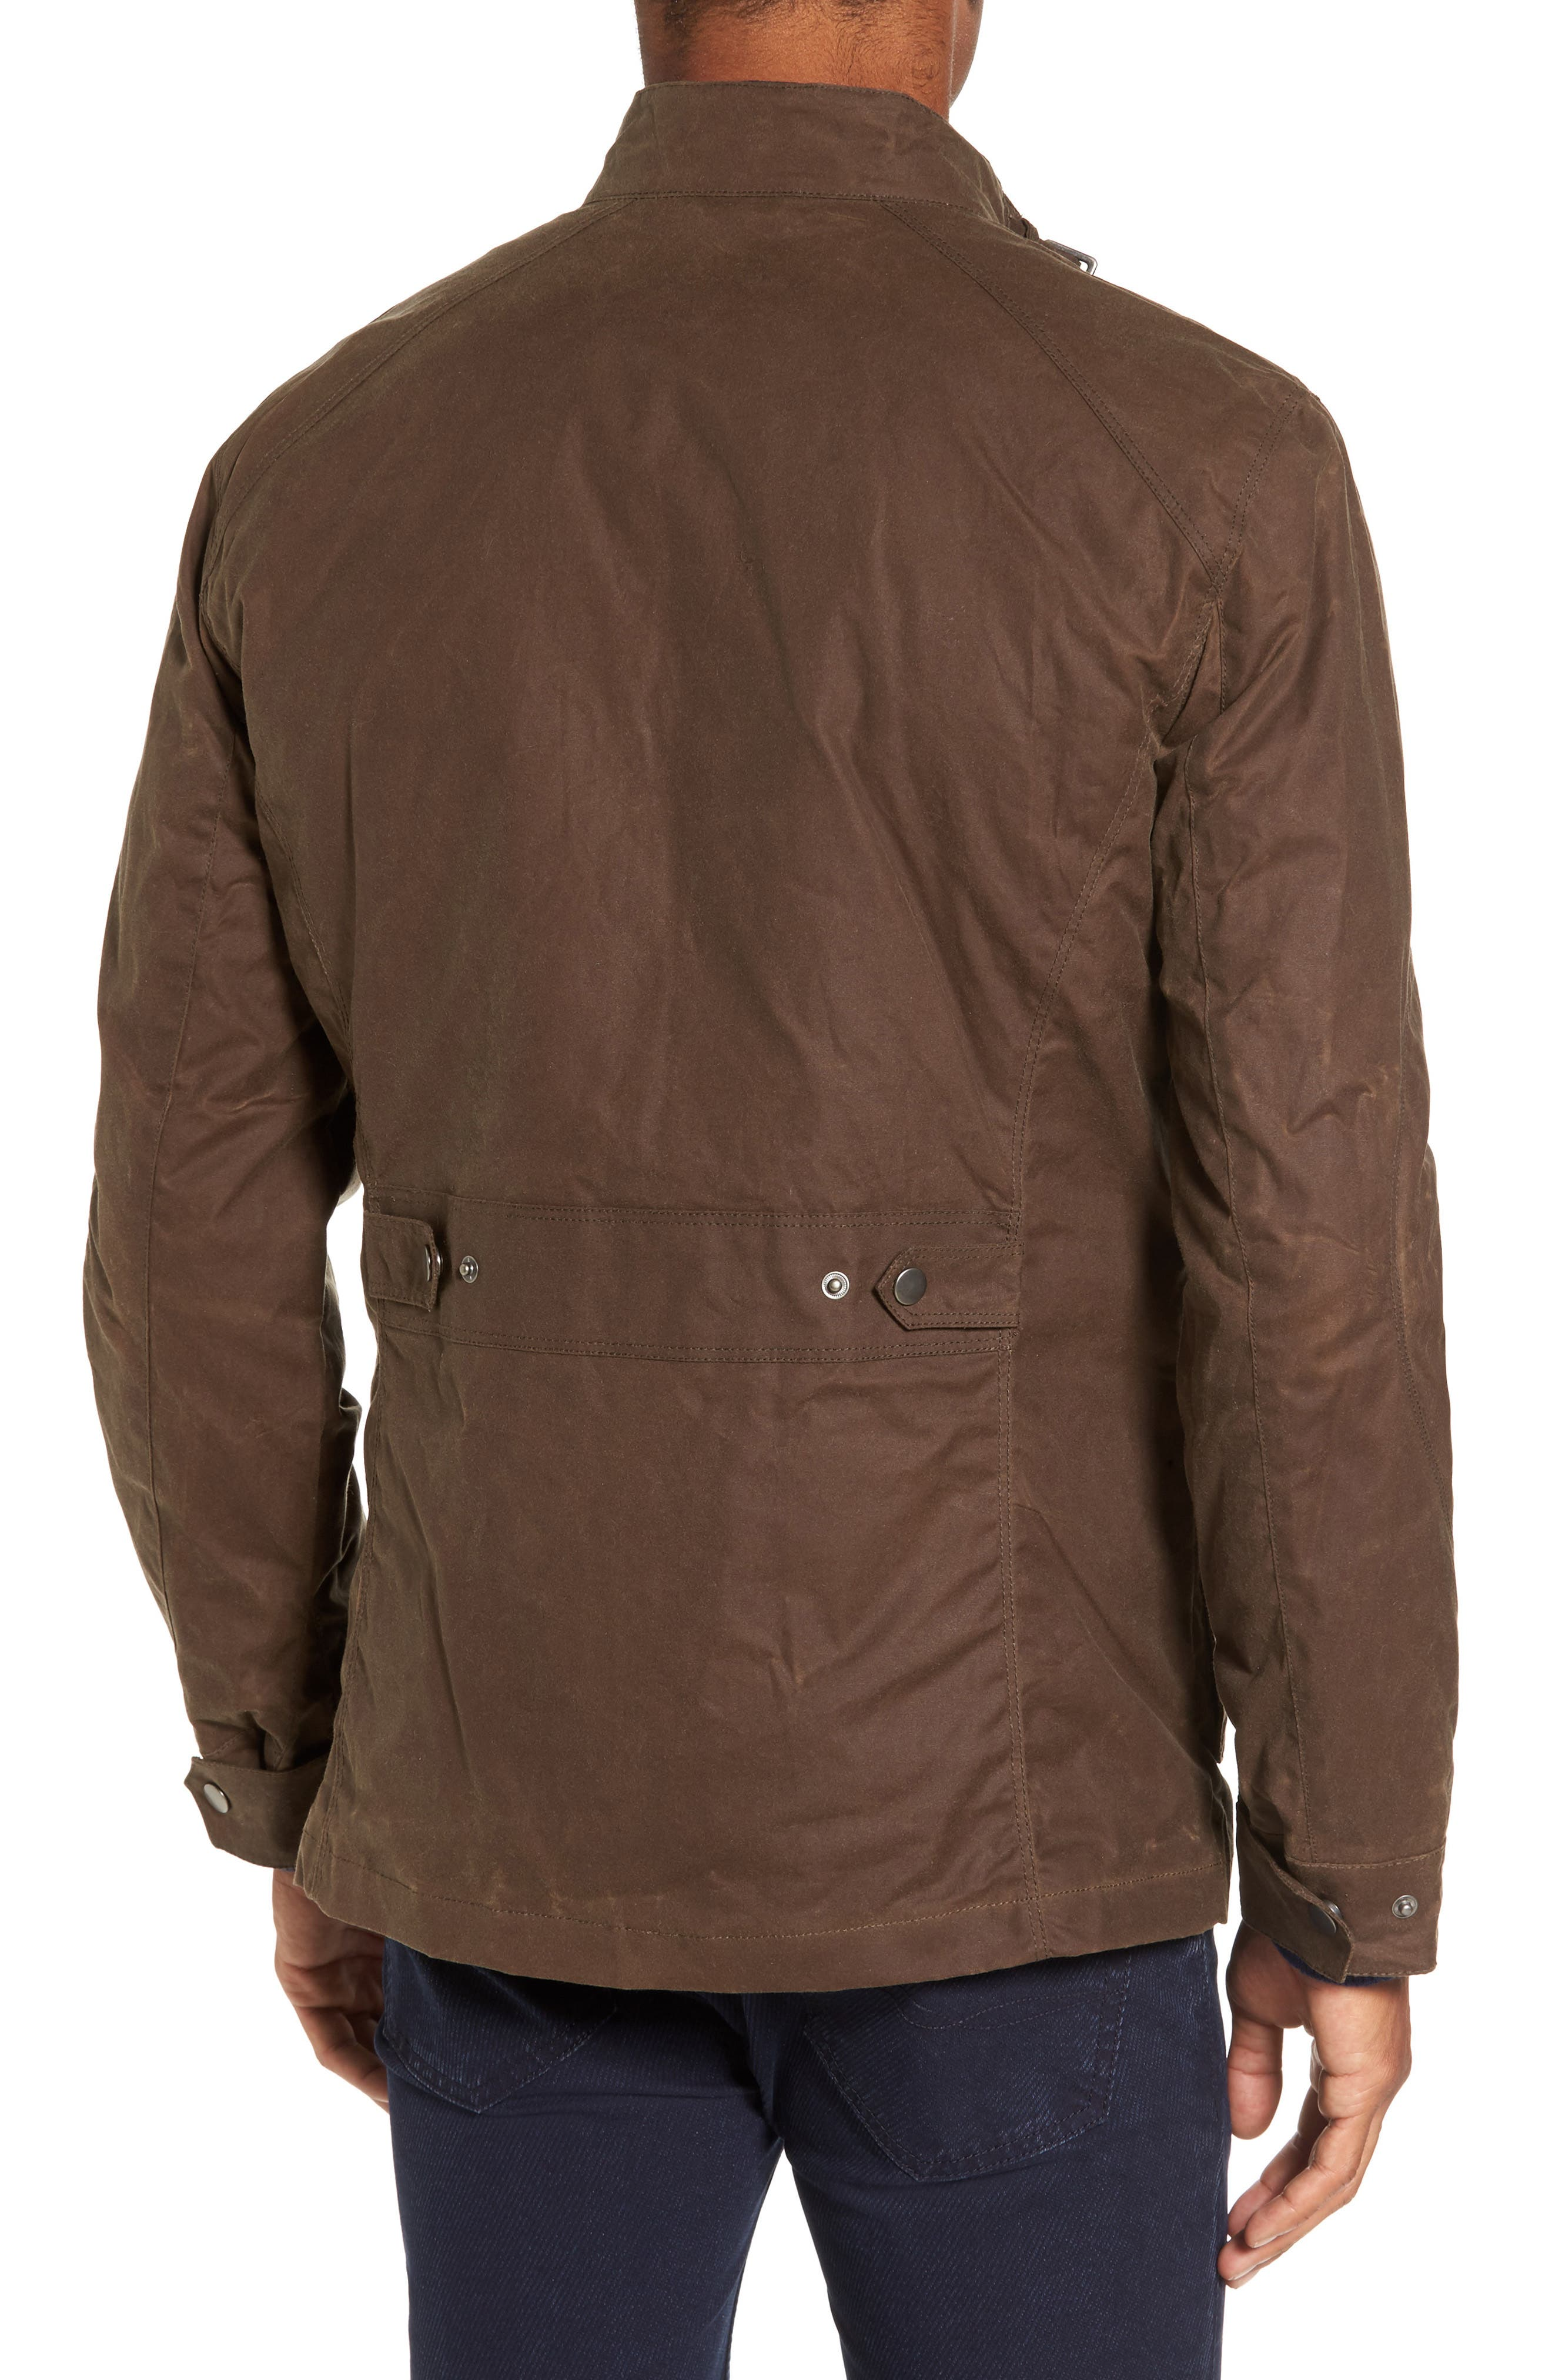 3-in-1 Waxed Cotton Jacket with Removable Vest,                             Alternate thumbnail 2, color,                             250